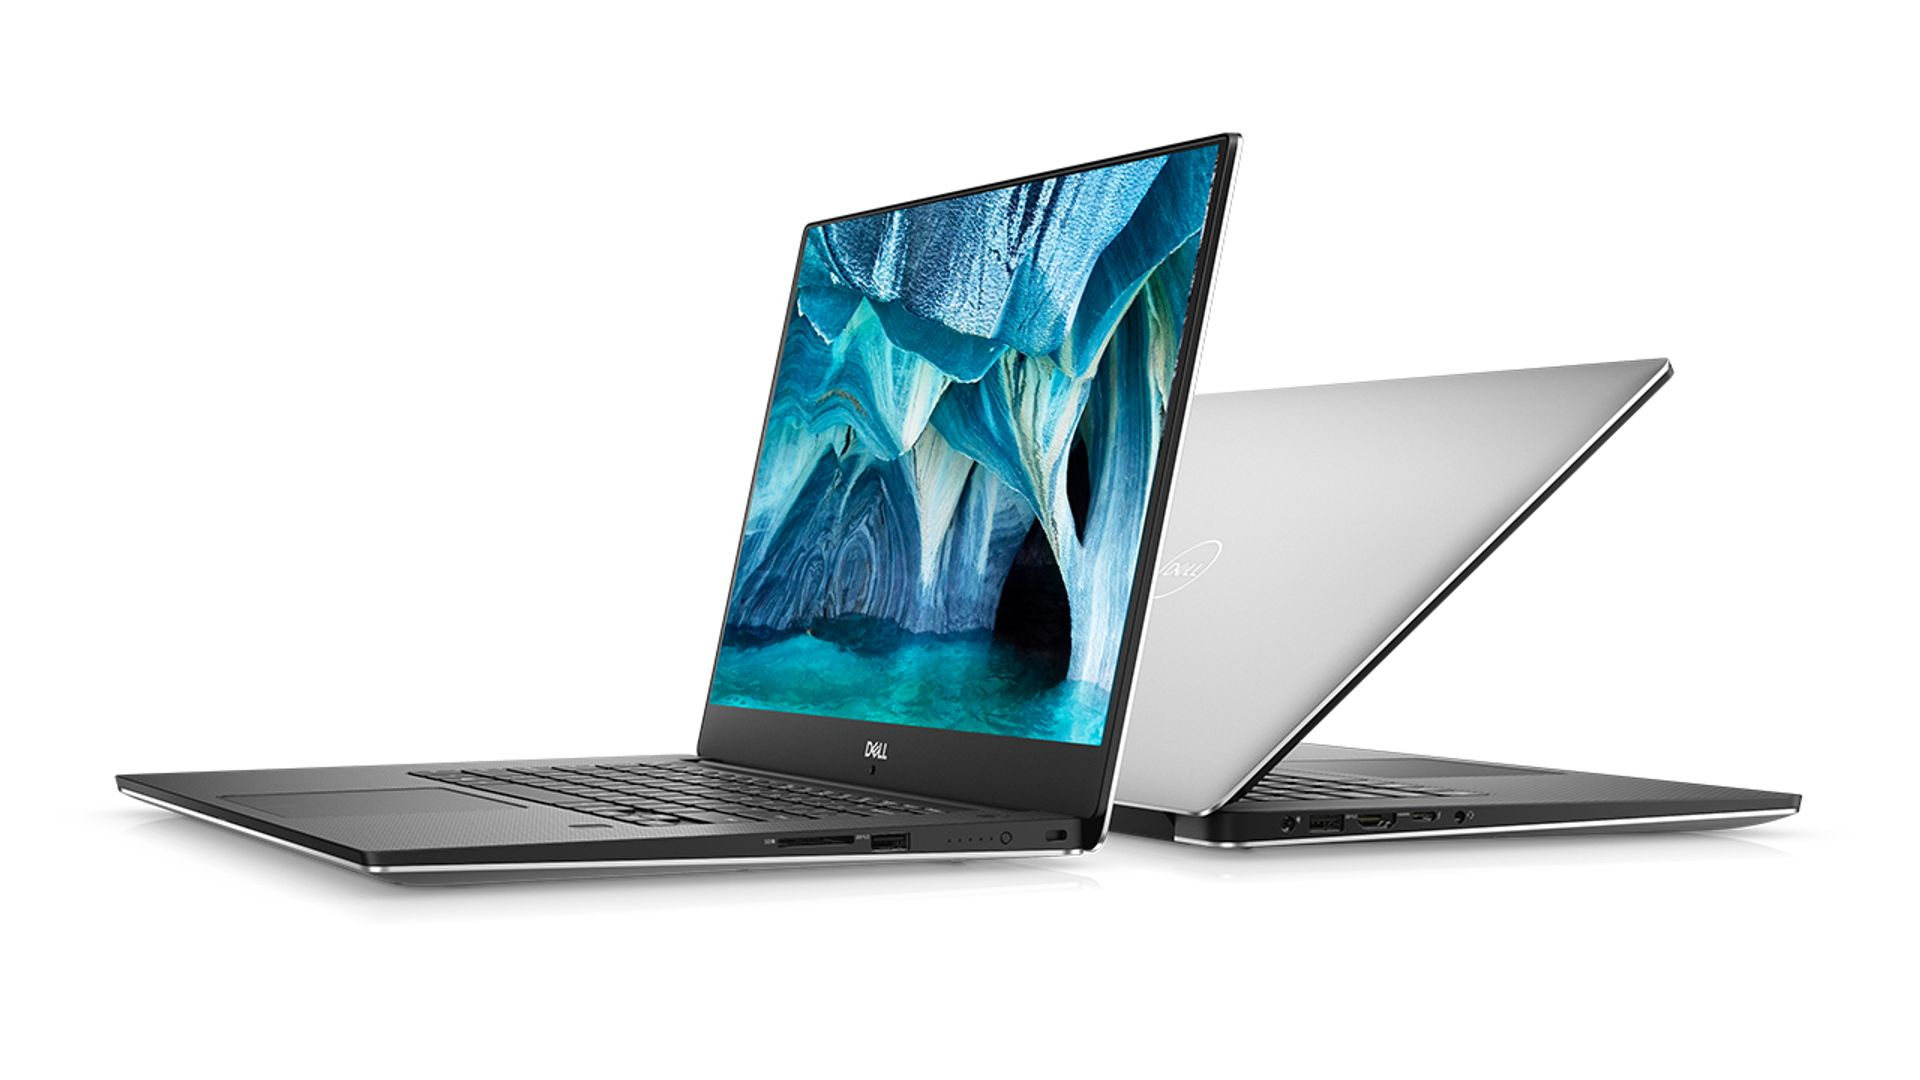 Video: XPS 15 Laptop (2019) – Produktübersicht 0:52